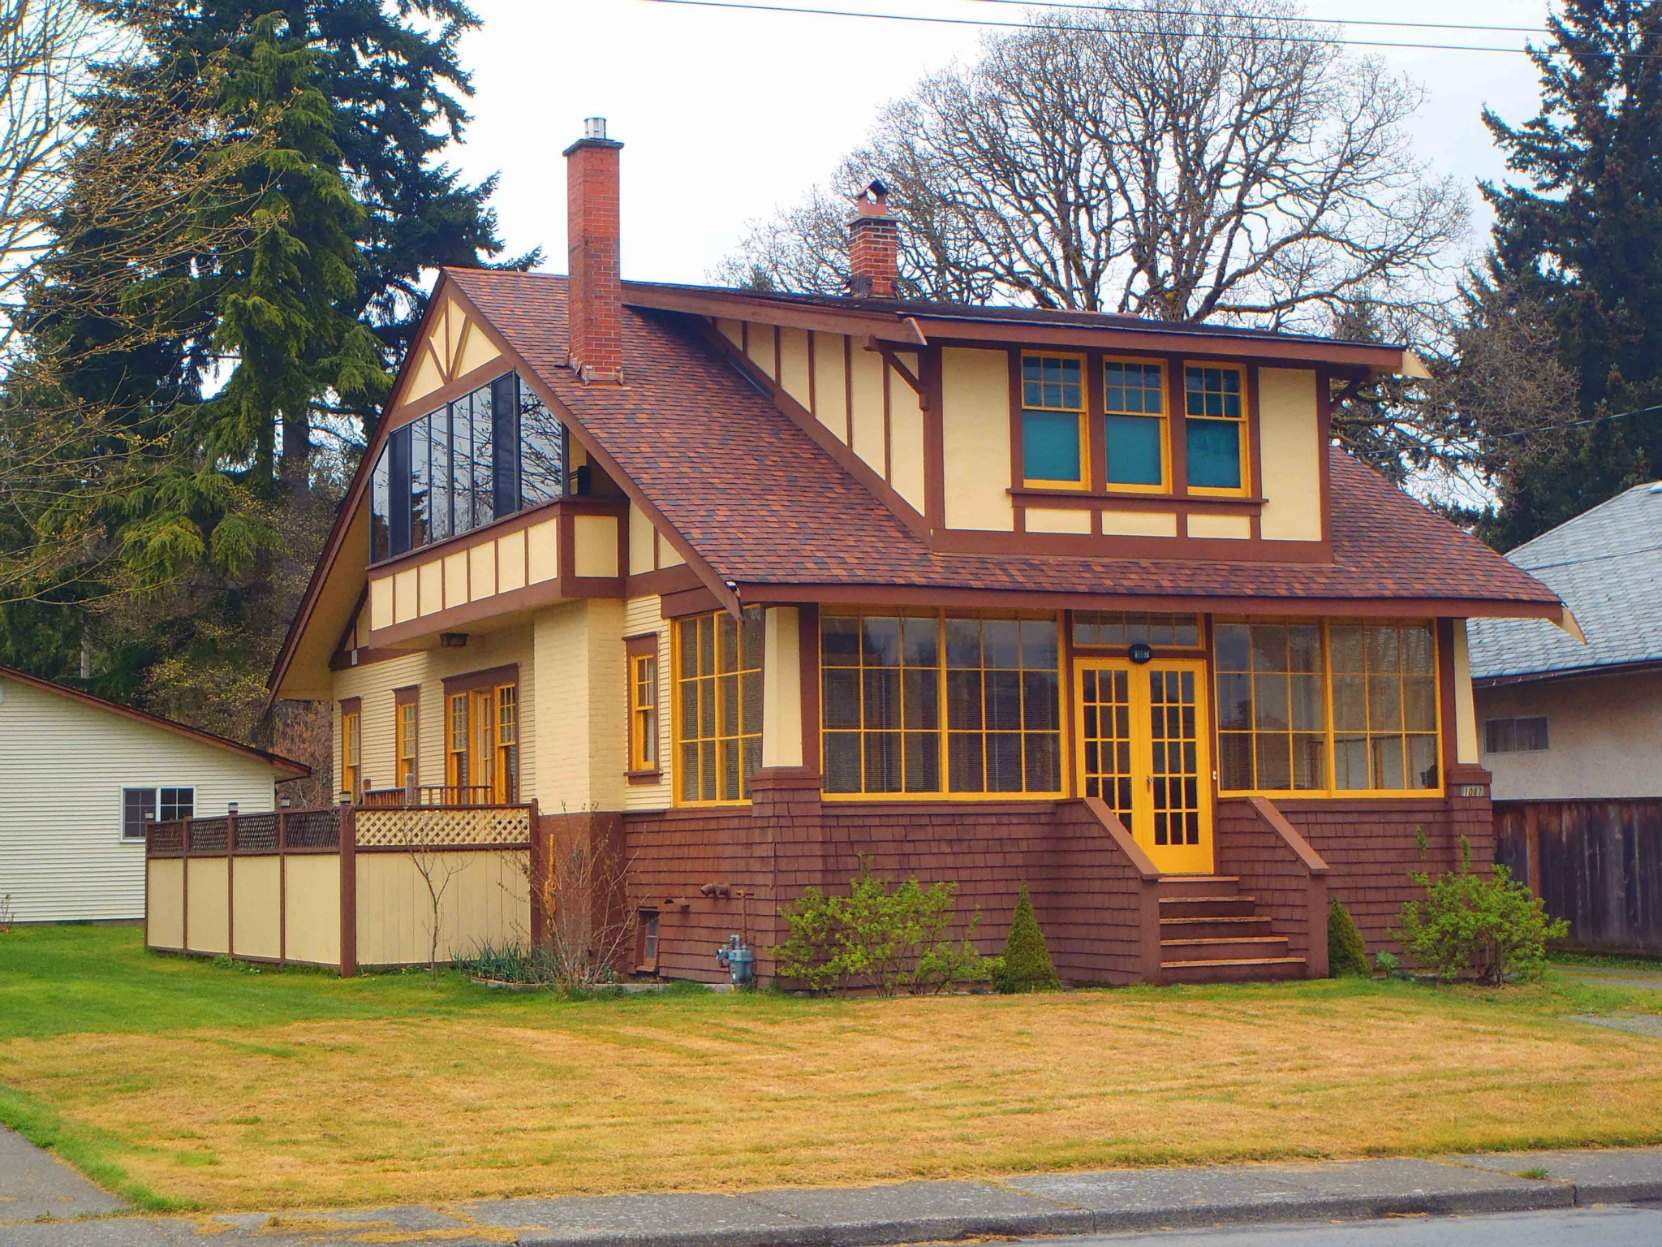 1087 Islay Street was built in 1920 by owner Charles W. O'Neill. It is a good example the Arts & Crafts style